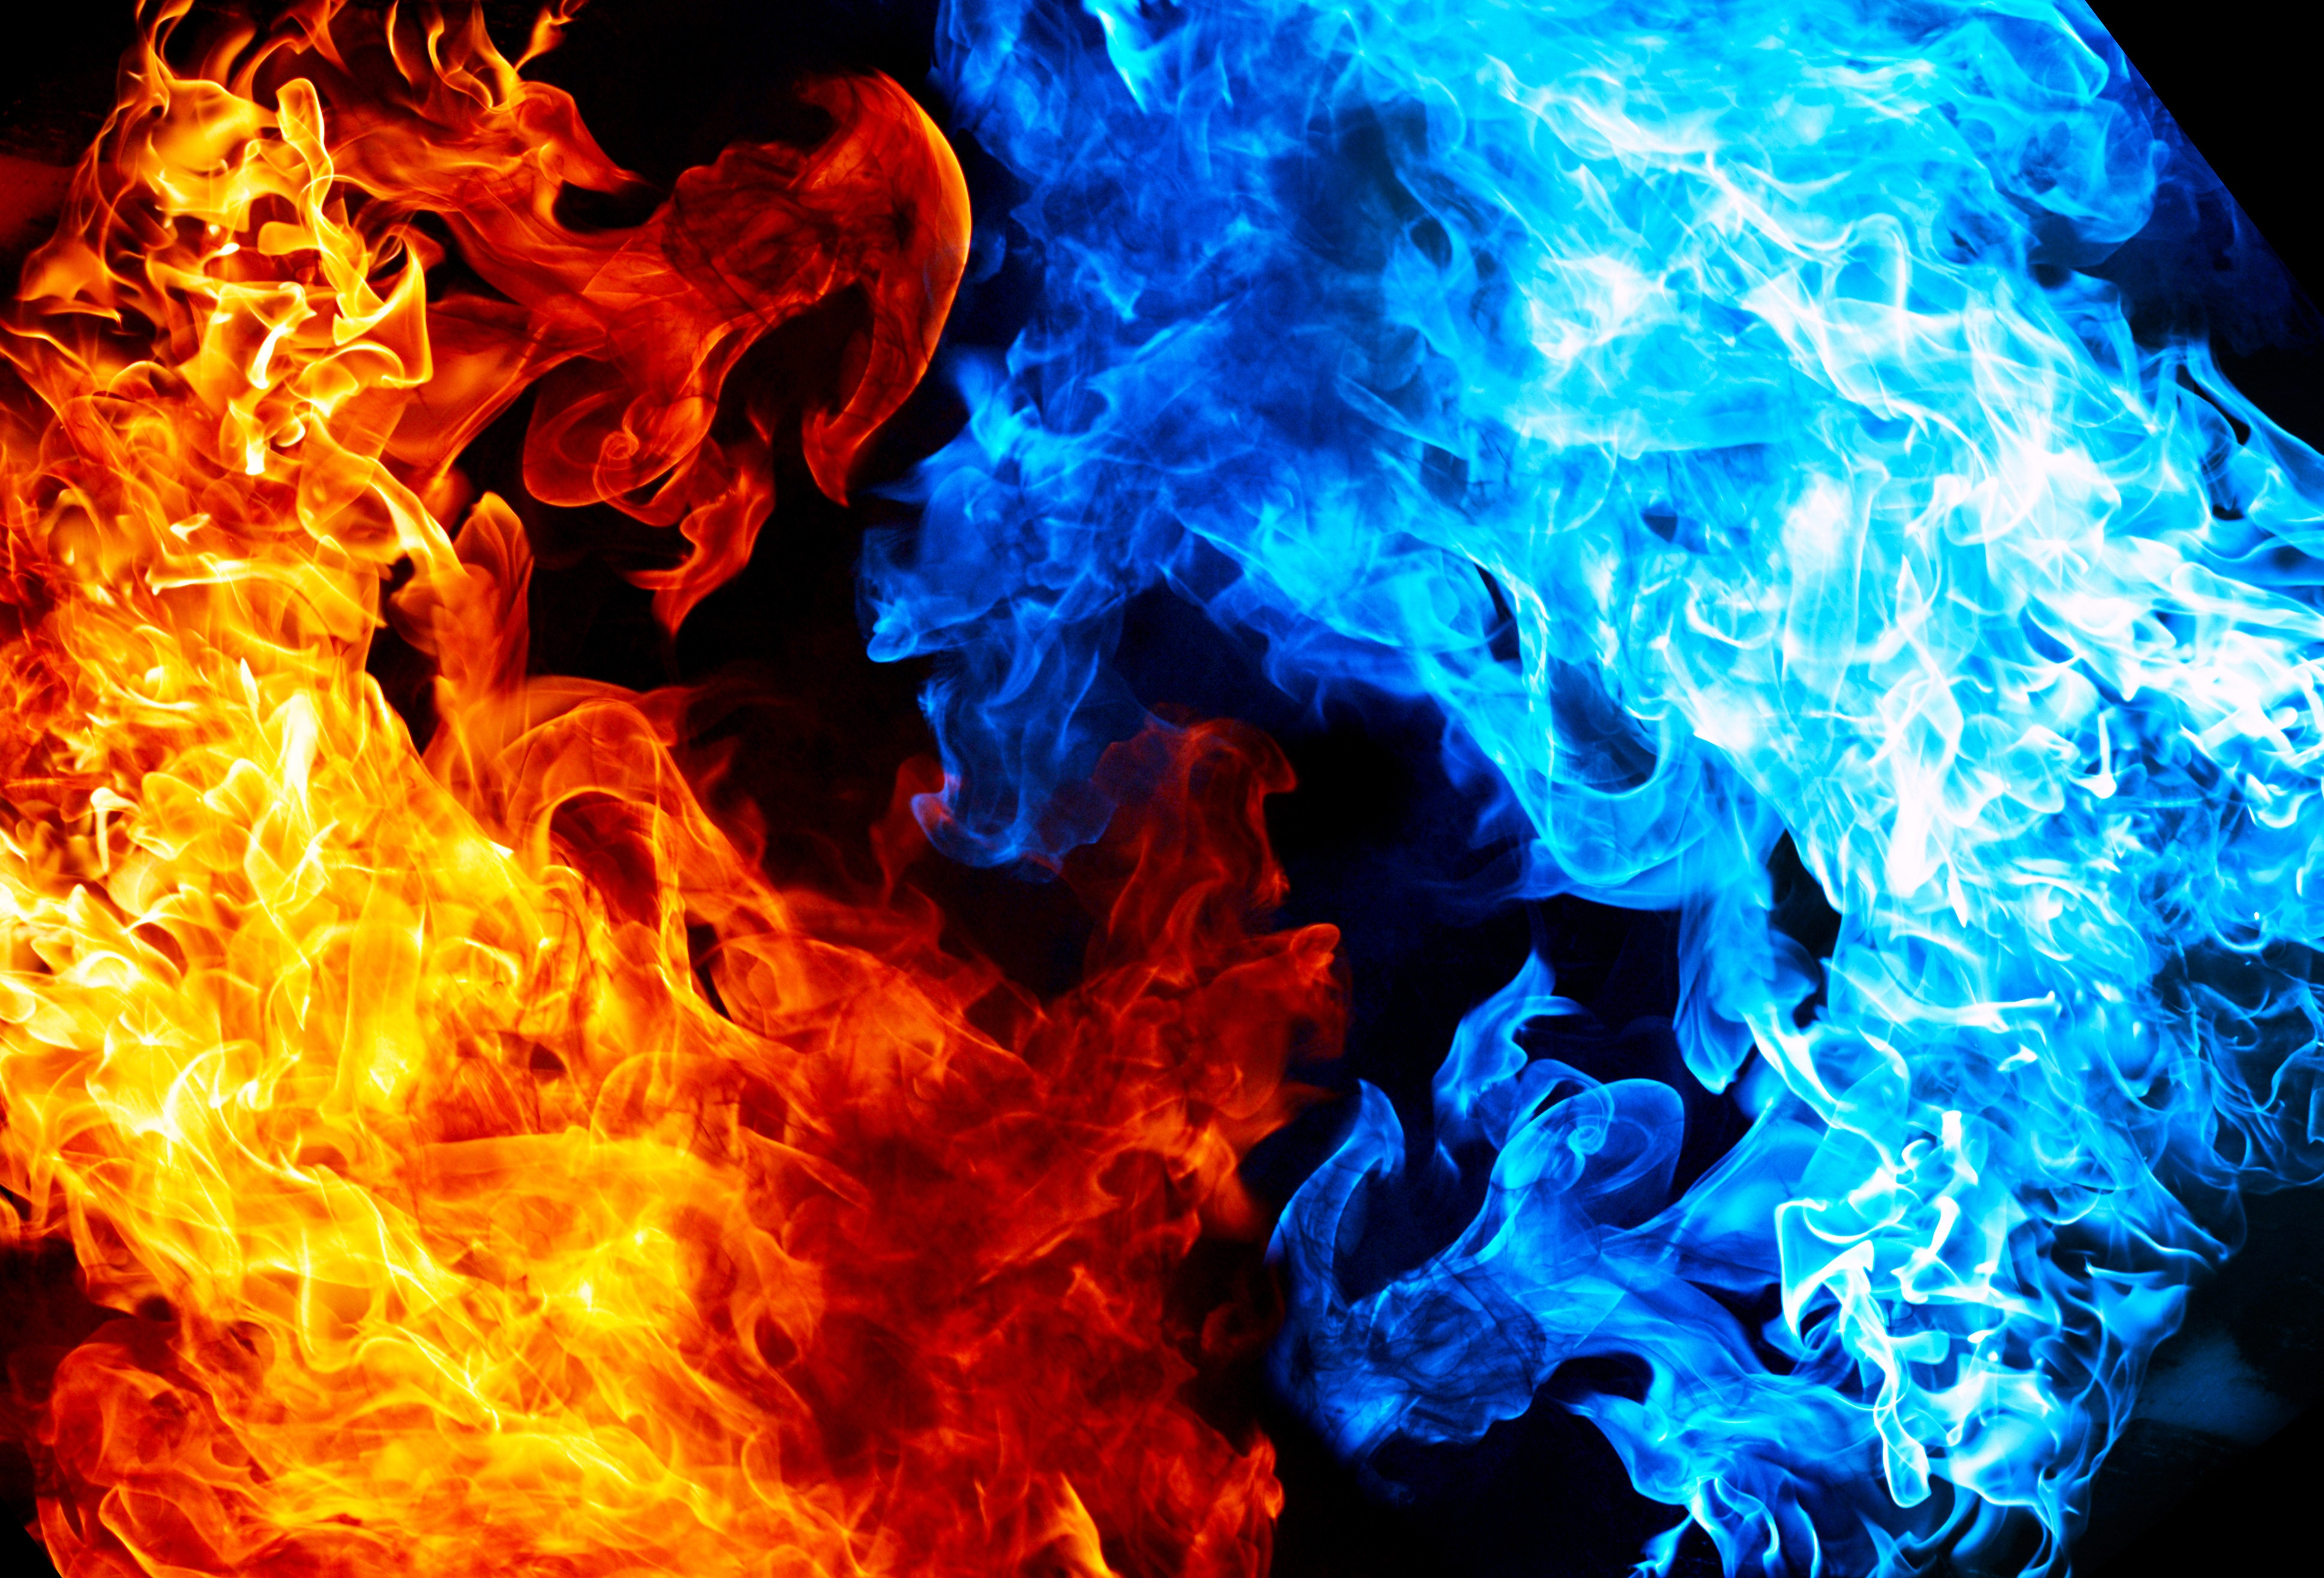 Flames Wallpapers 30 Images Dodowallpaper